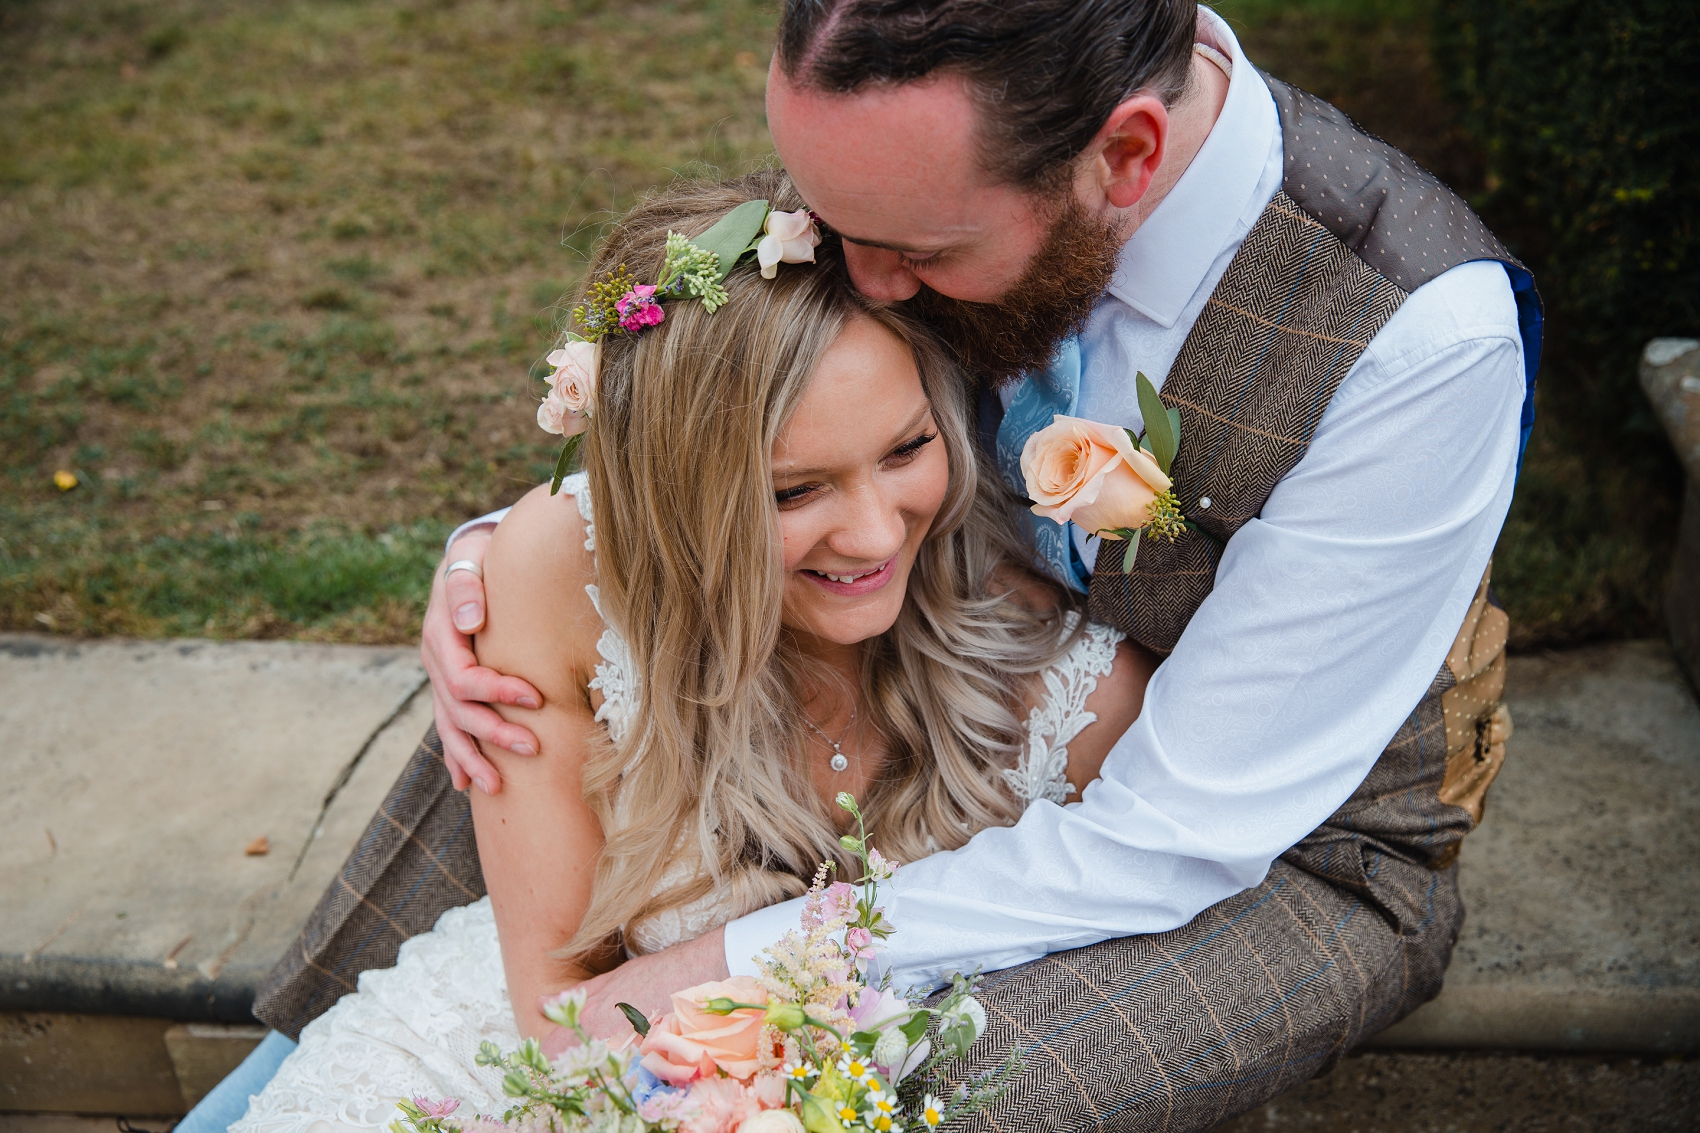 Spring wedding at Norwood Park